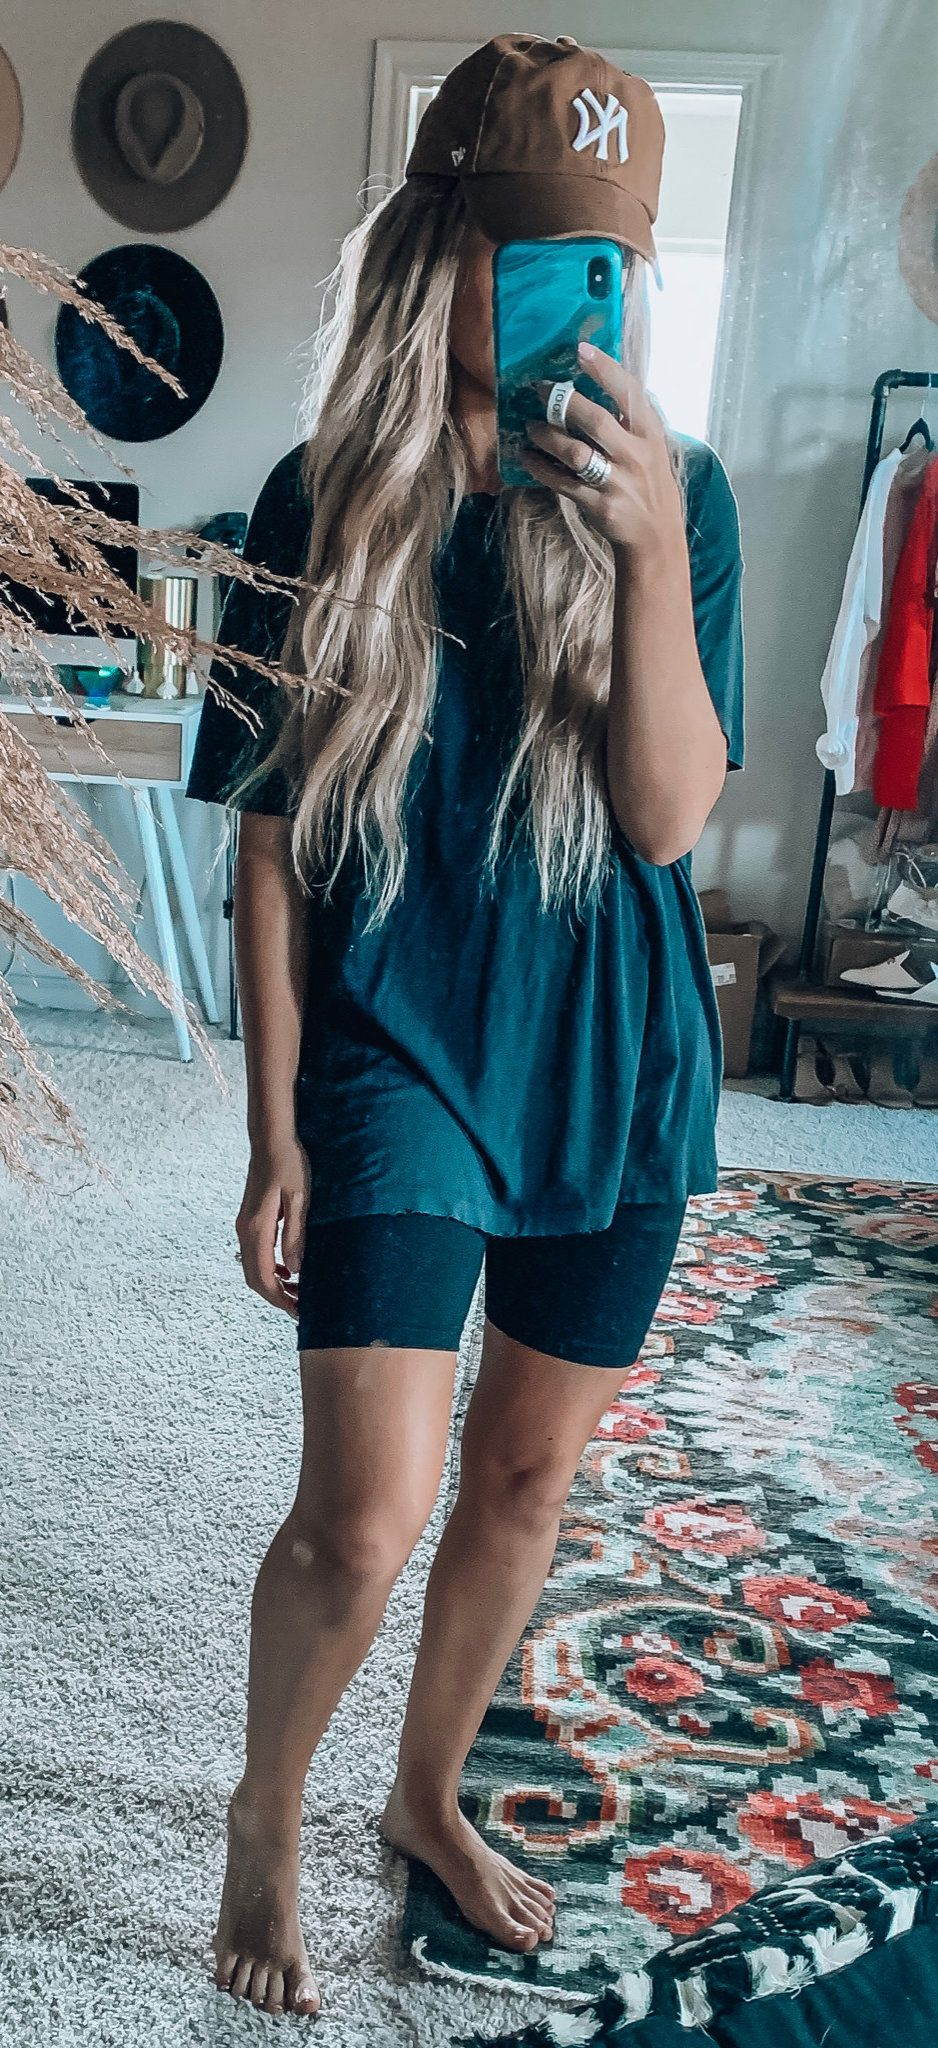 blue cap-sleeved shirt and short shorts #summer #outfits